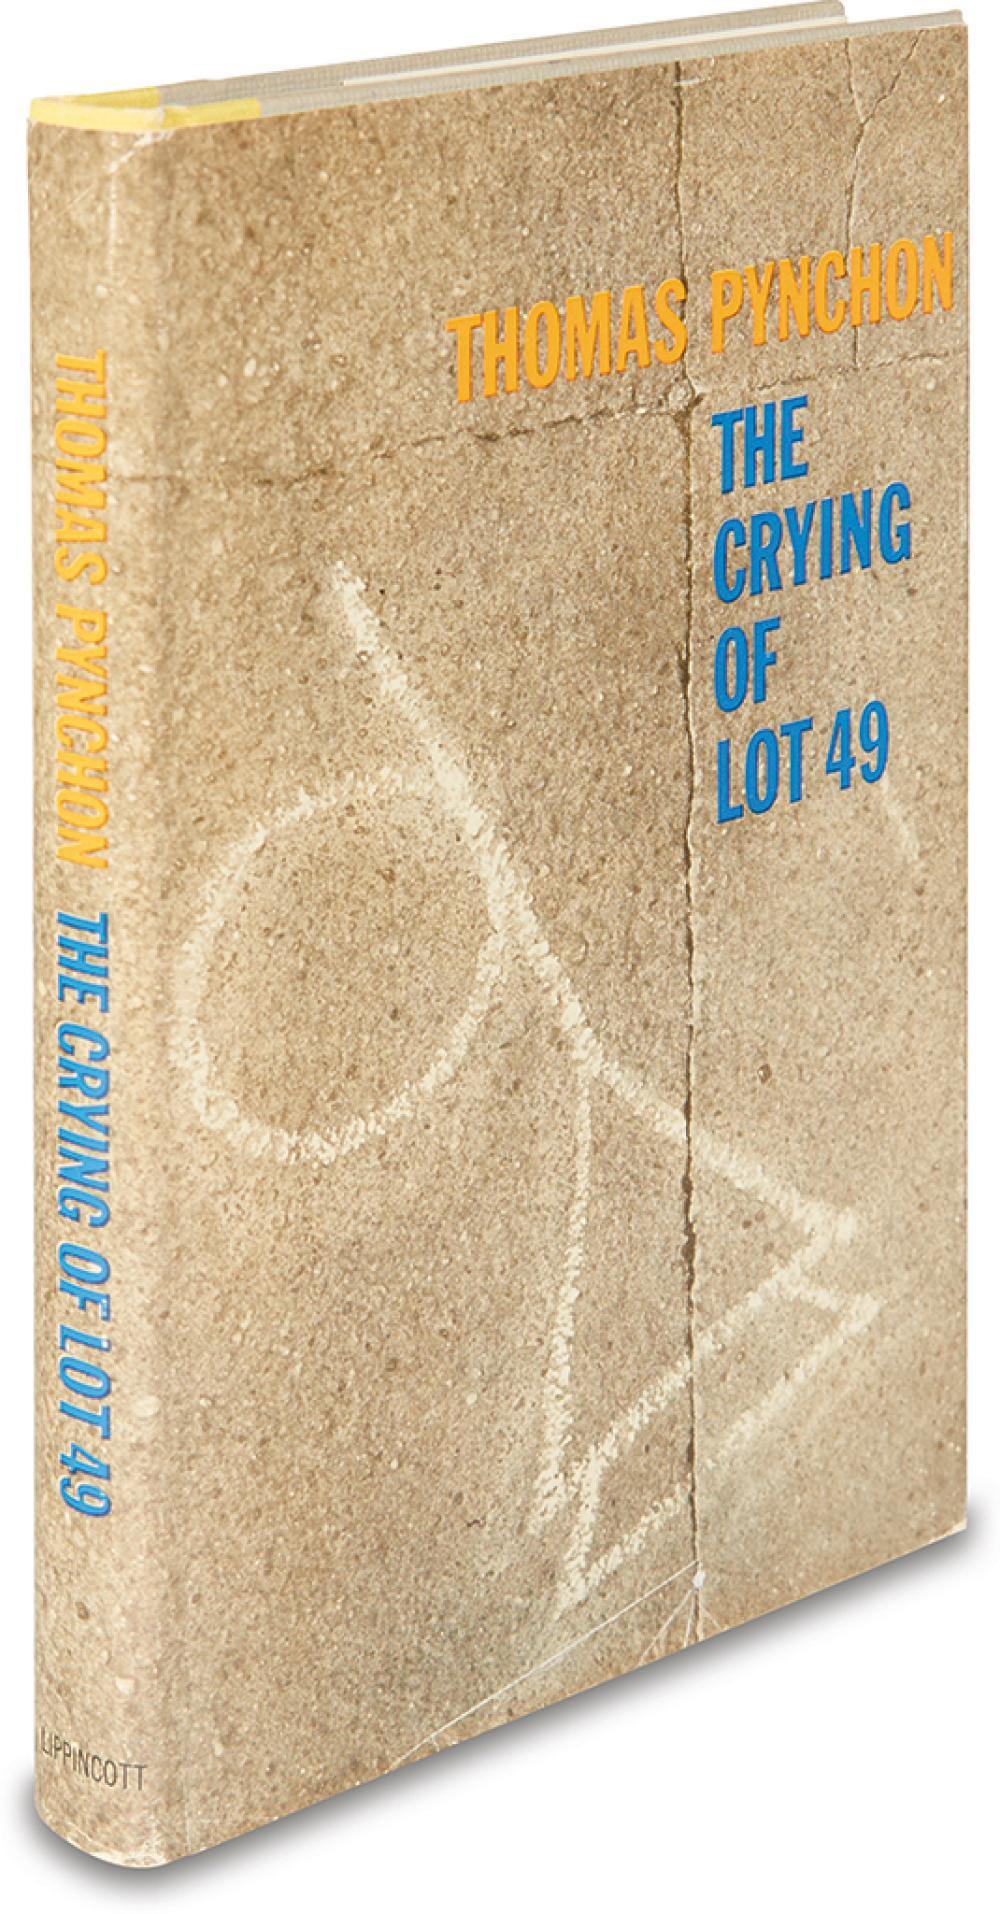 PYNCHON, THOMAS. Crying of Lot 49.